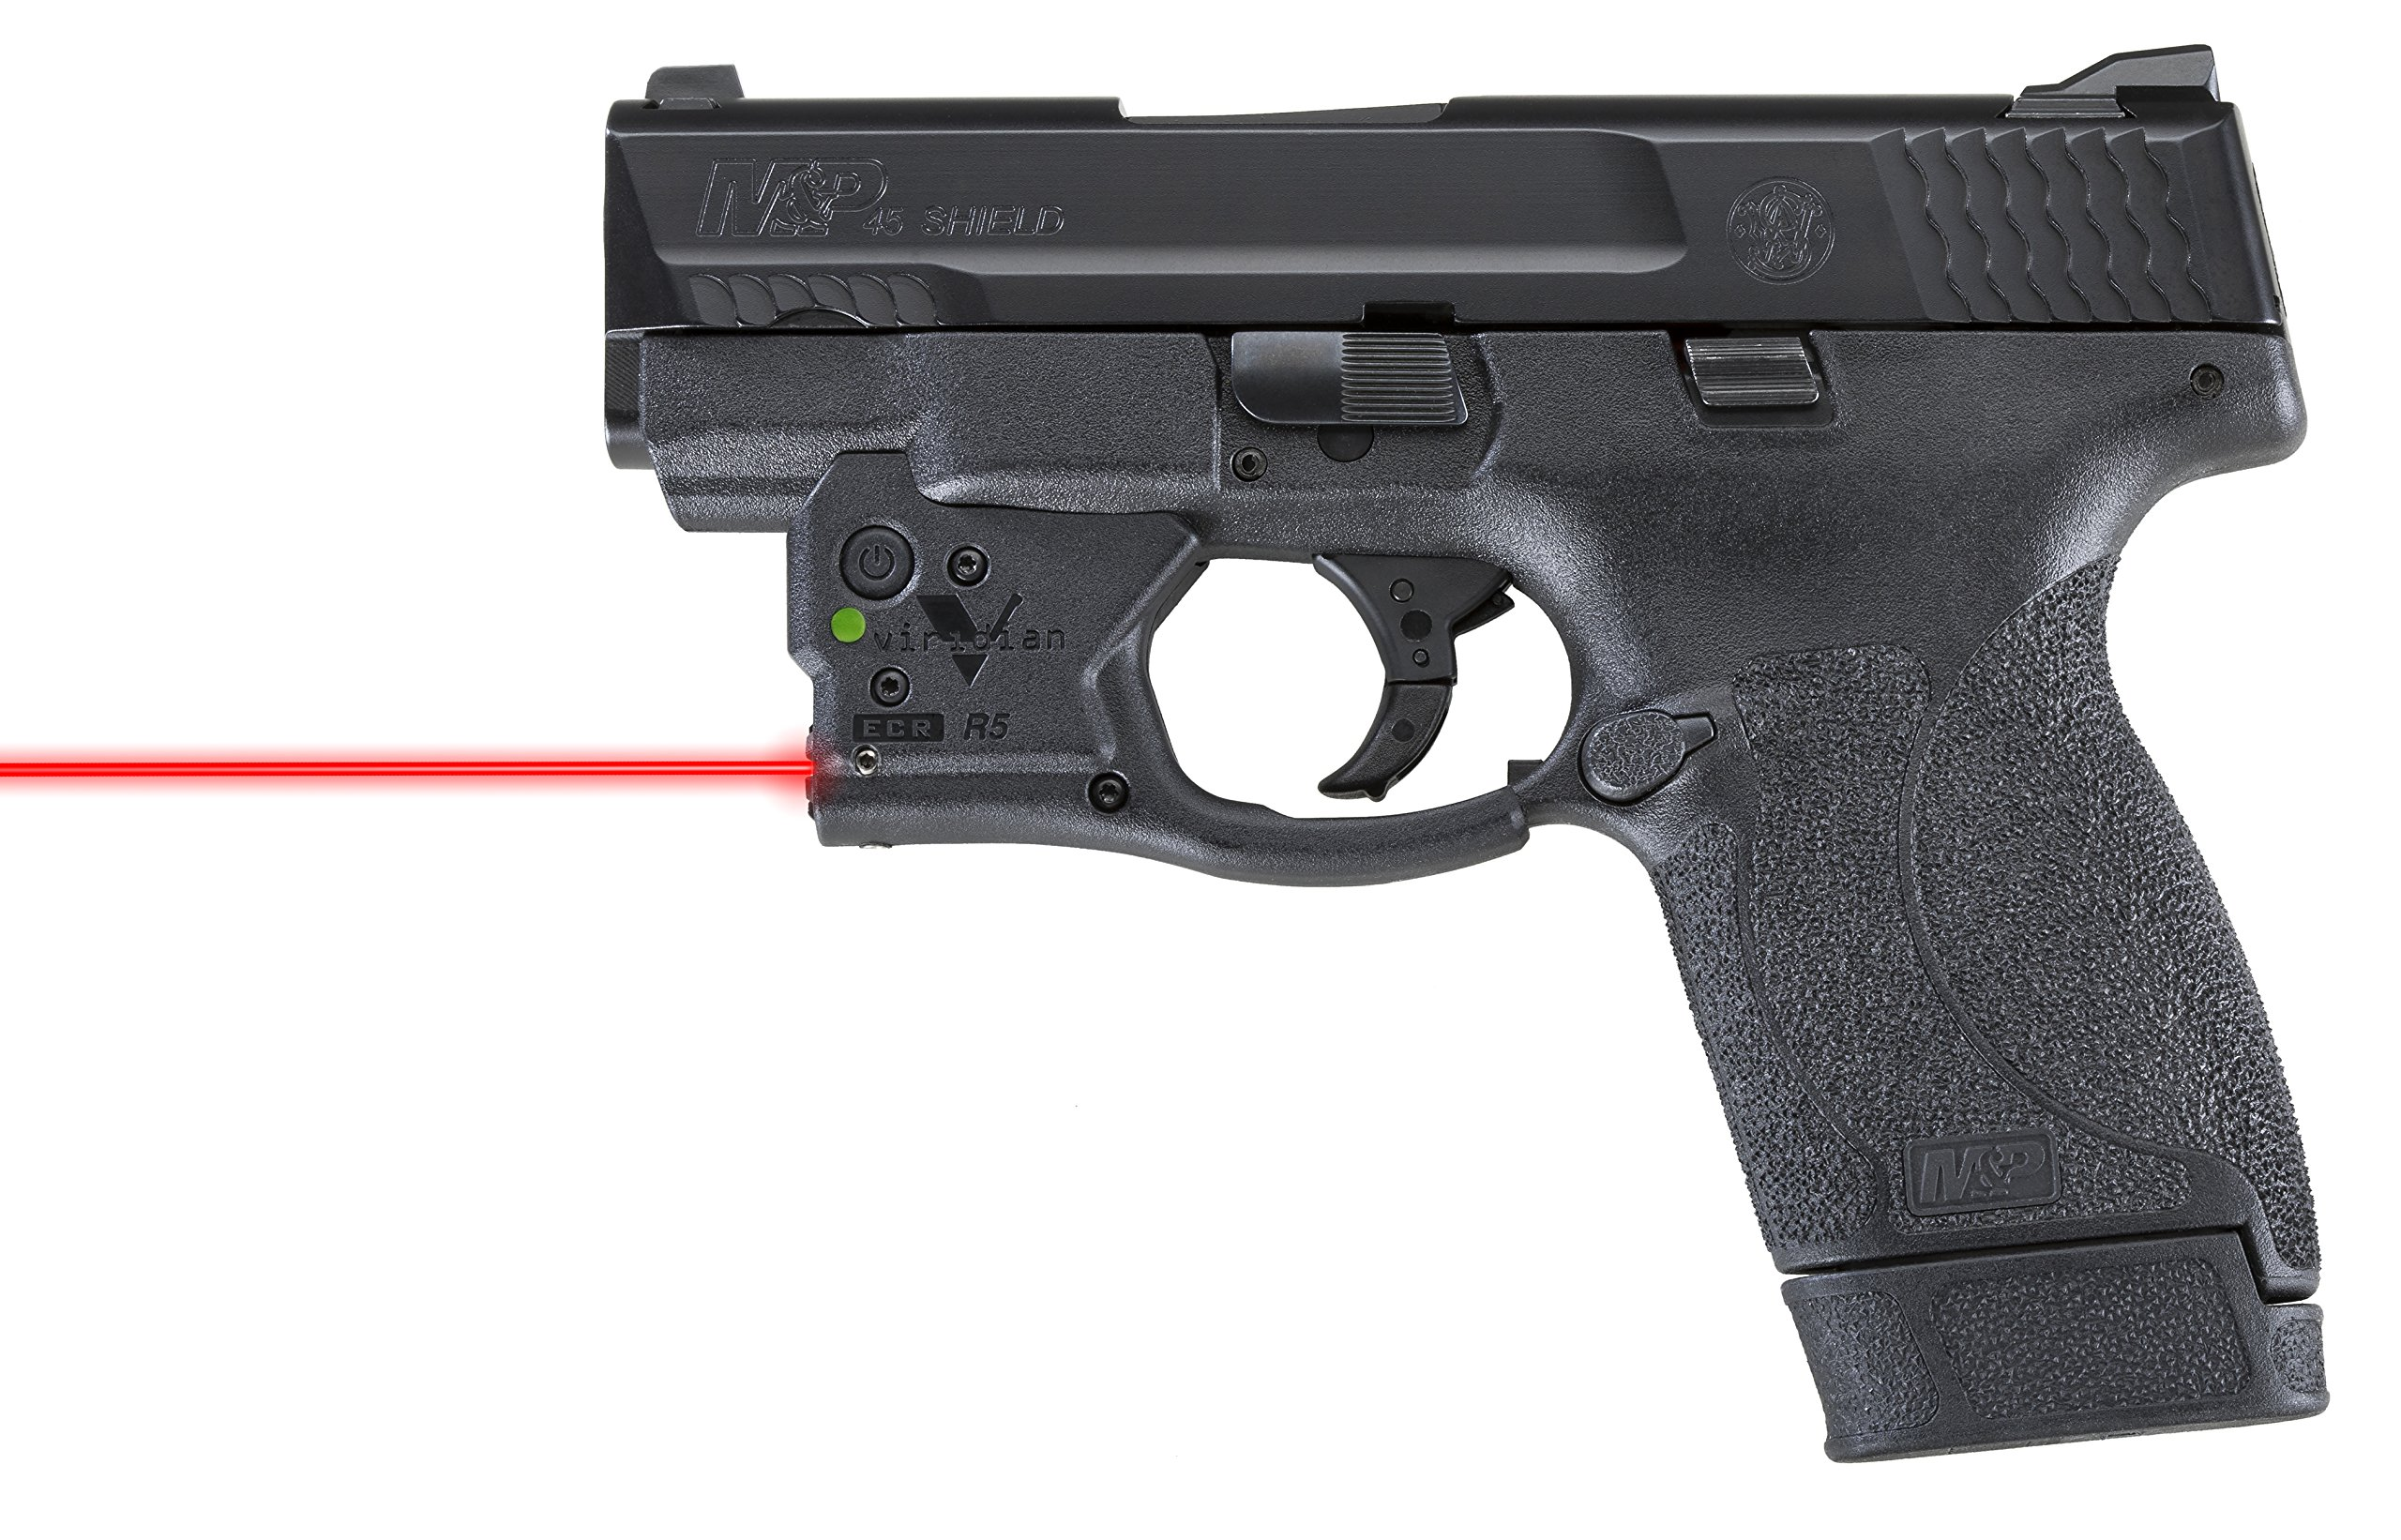 VIRIDIAN WEAPON TECHNOLOGIES, Reactor 5 Gen II Red Laser, Smith & SWesson M&P Shield .45 with ECR Instant On Holster, Black by VIRIDIAN WEAPON TECHNOLOGIES